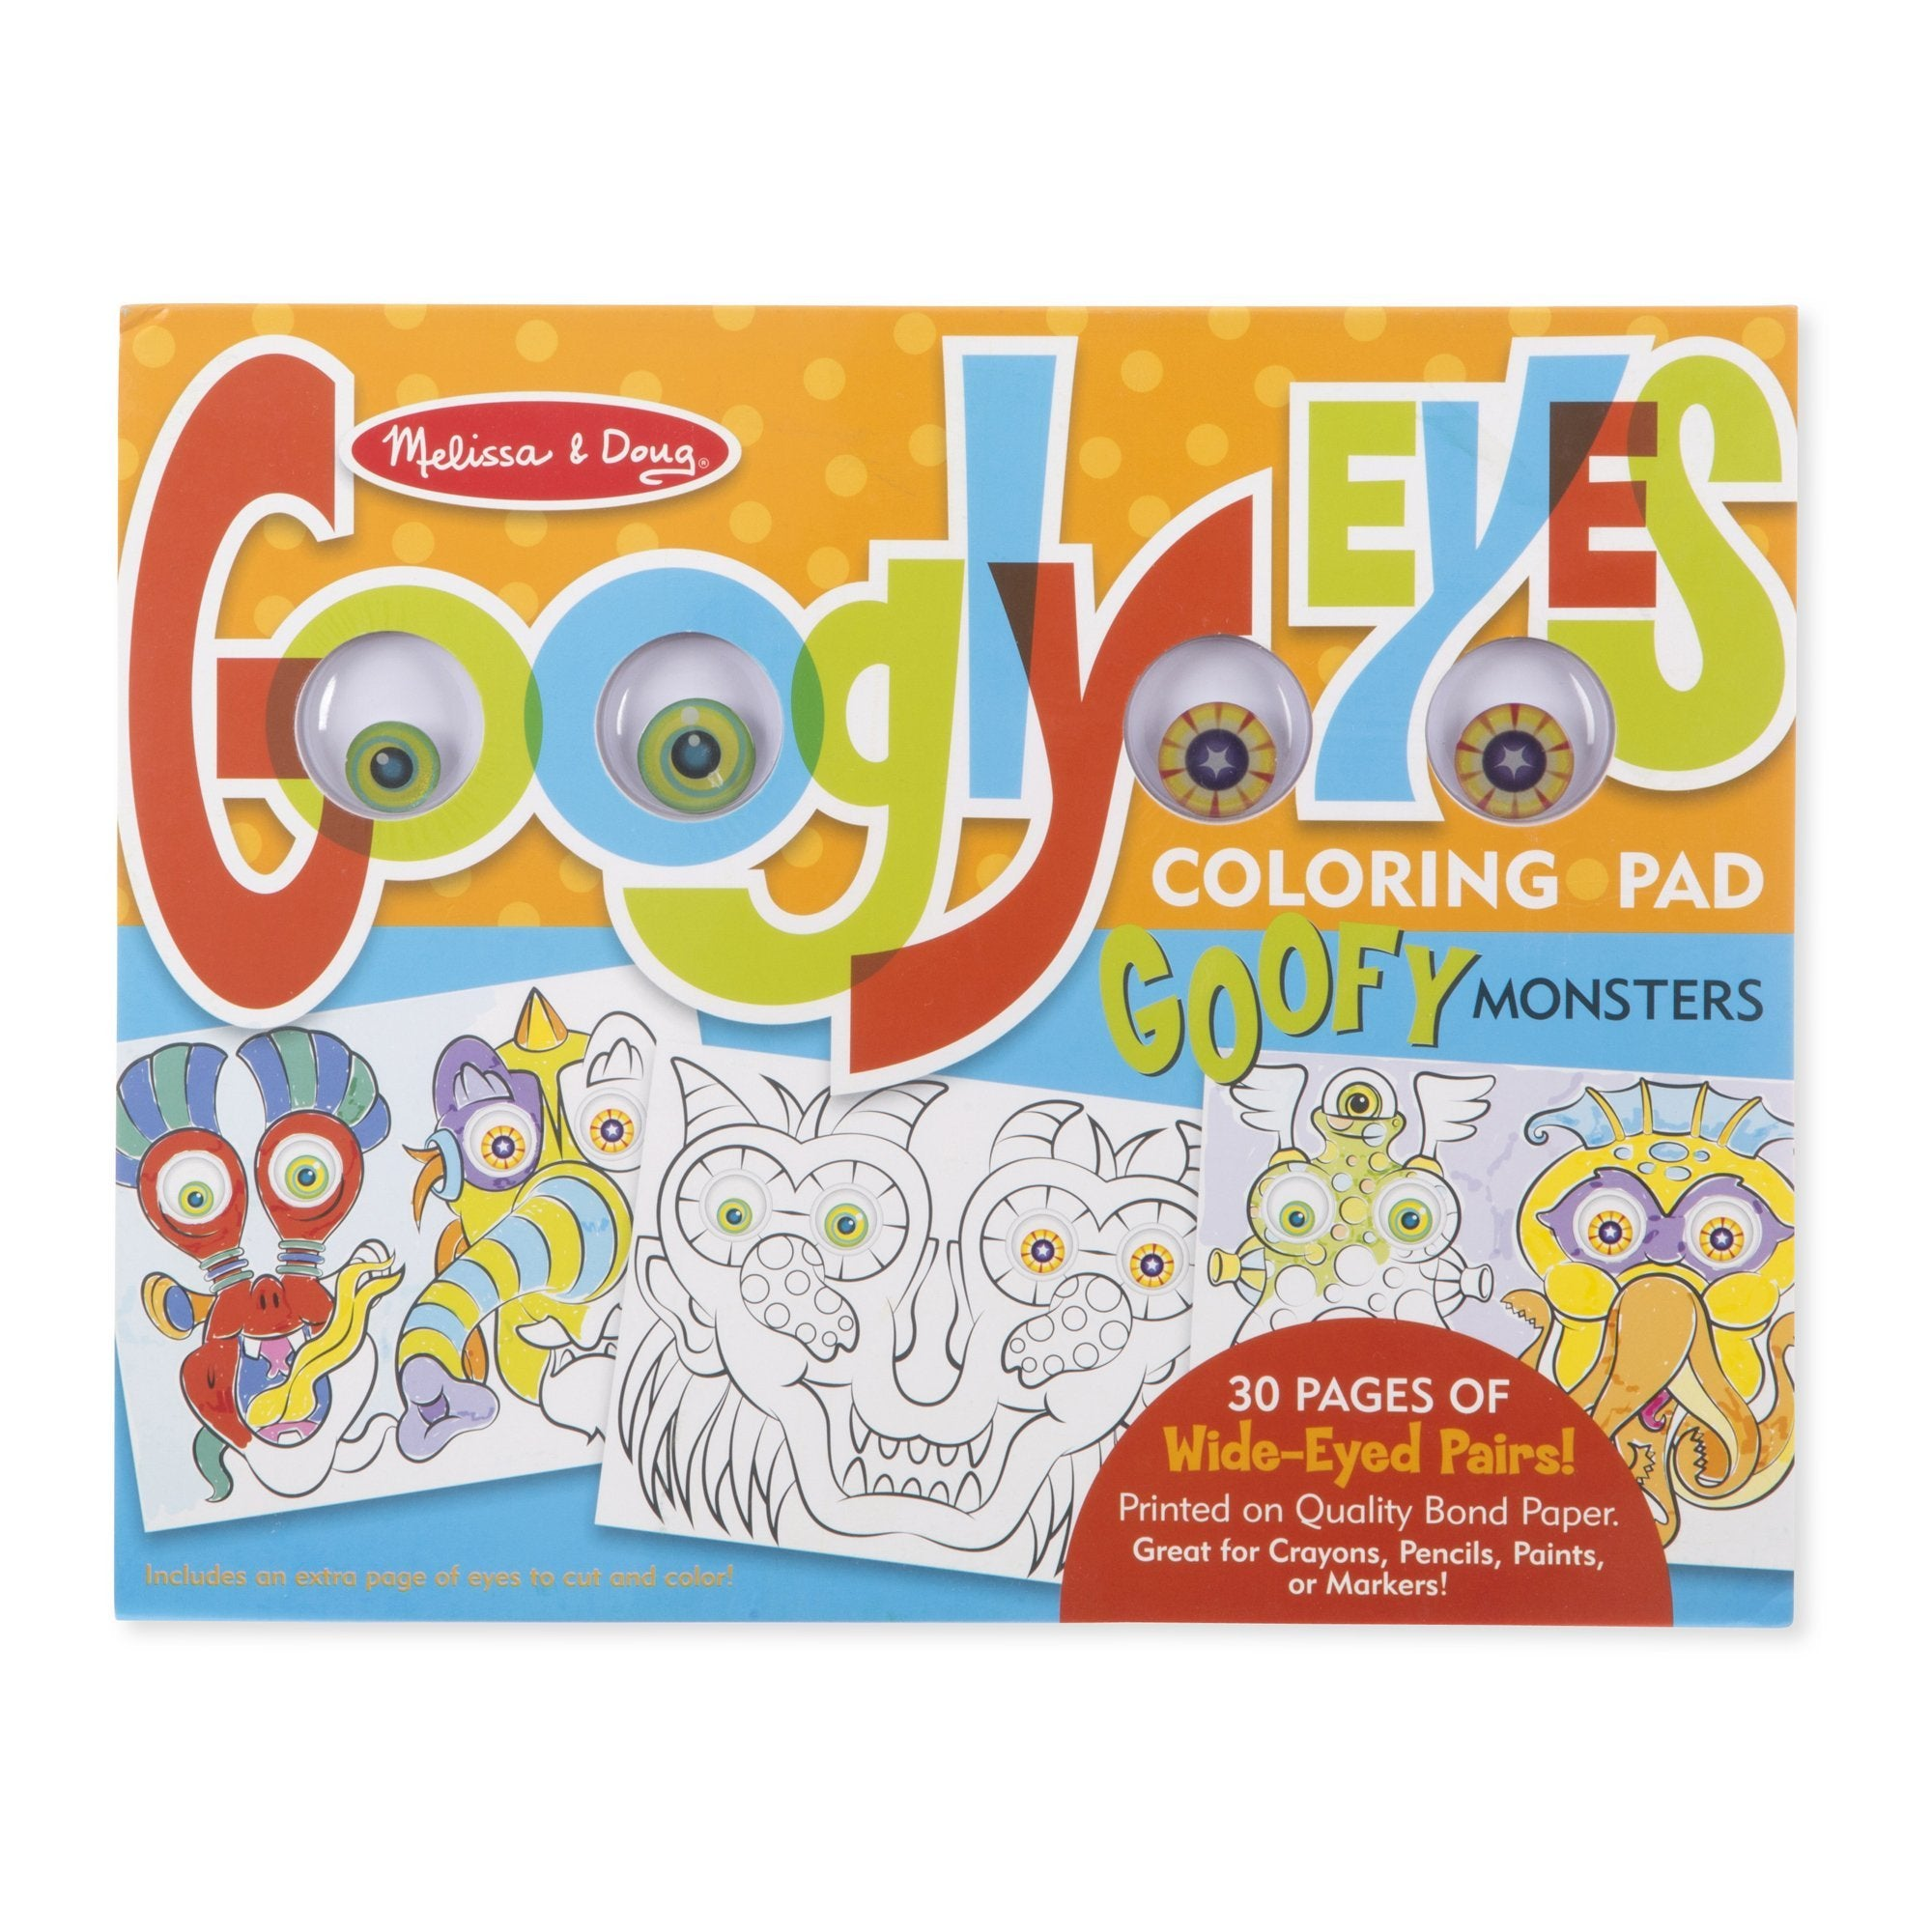 Monsters- Googly Eyes Coloring Pad